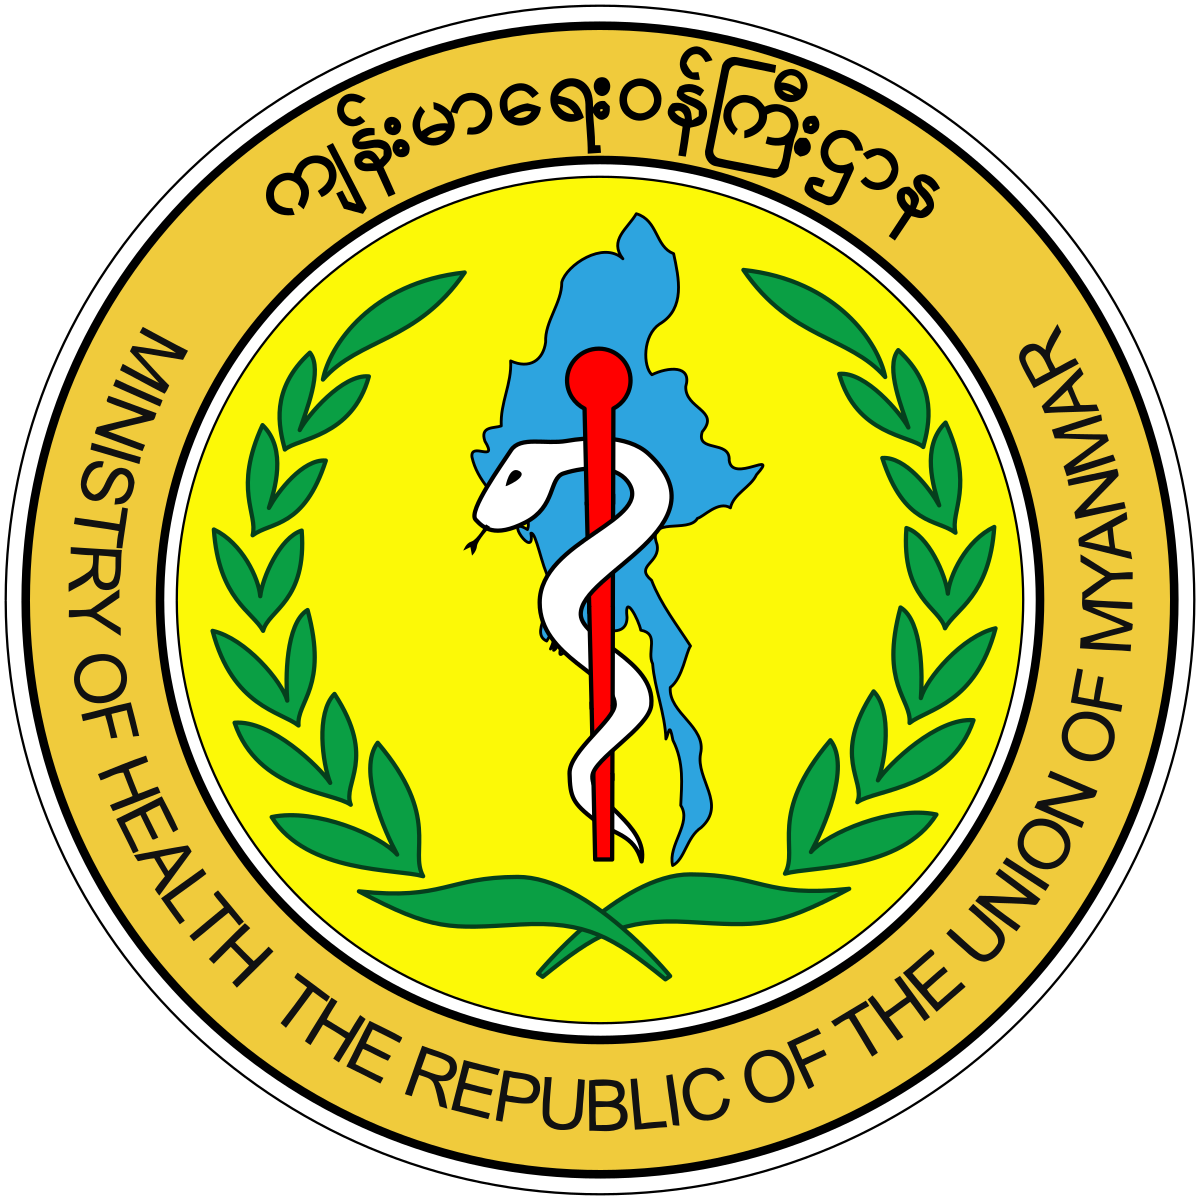 Department of national planning and rural development clipart clip art transparent library Ministry of Health (Myanmar) - Wikipedia clip art transparent library